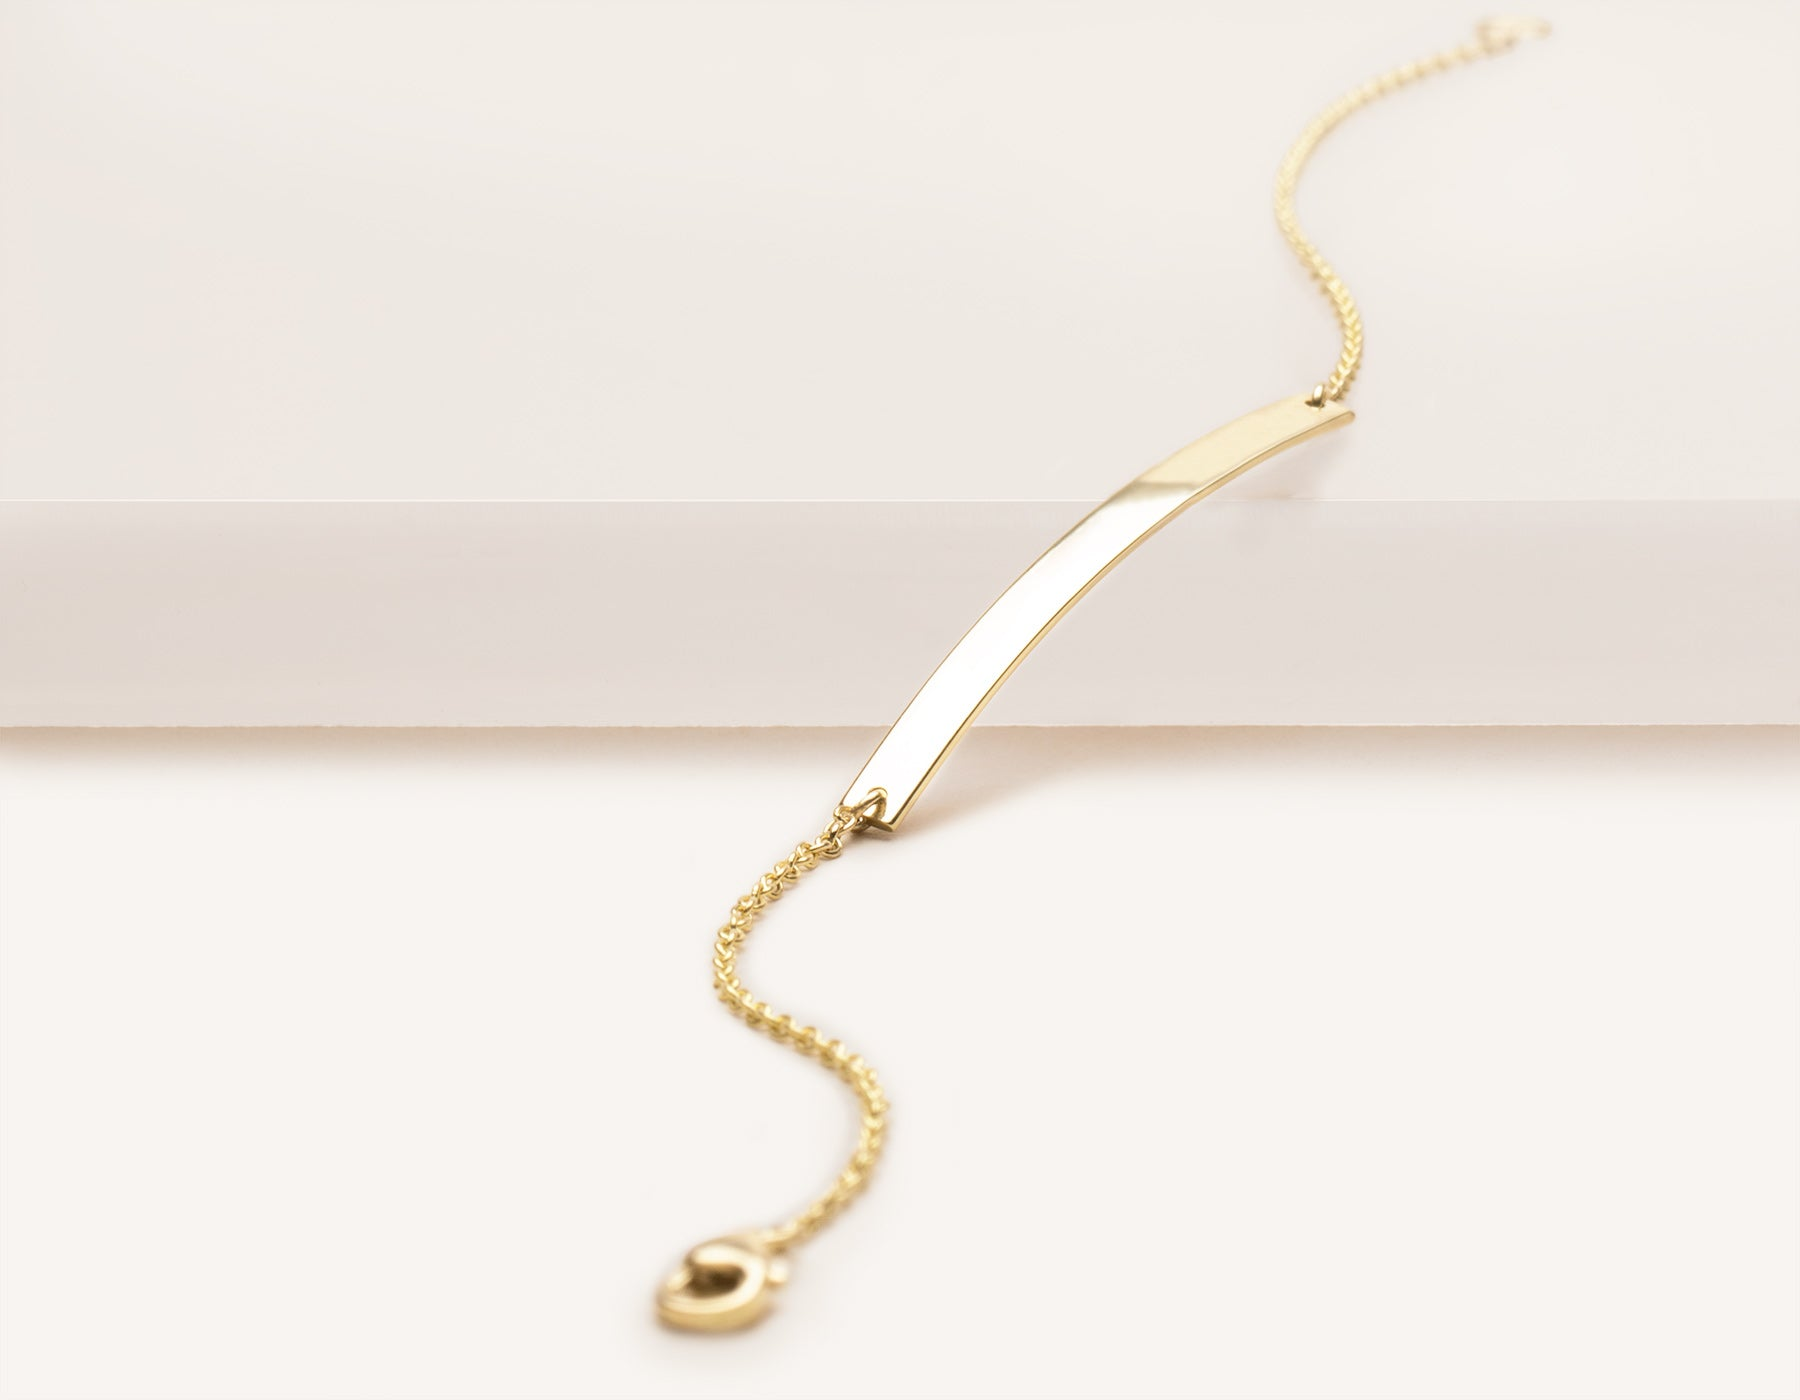 Vrai and oro modern minimalist 14k solid gold Lobster Bracelet clasp, 14K Yellow Gold